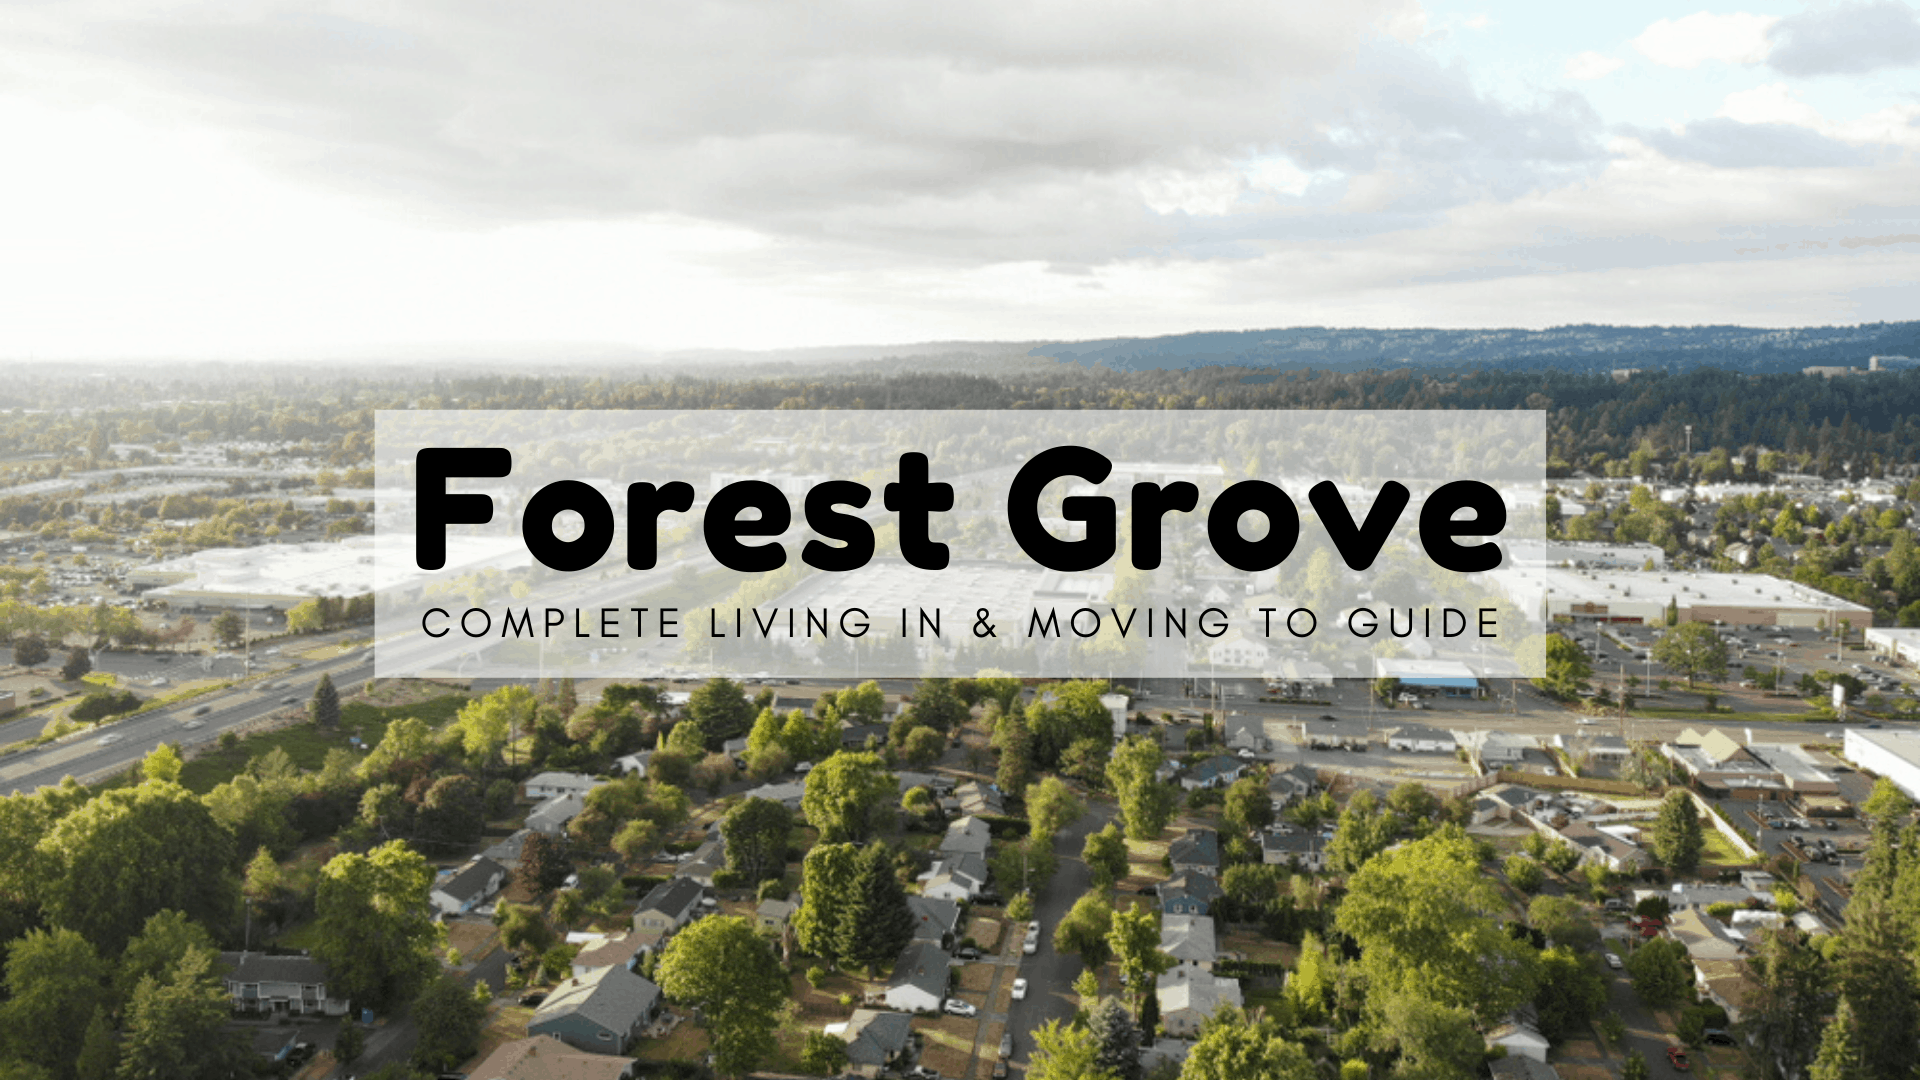 Forest Grove, OR - Complete Living in & Moving Guide